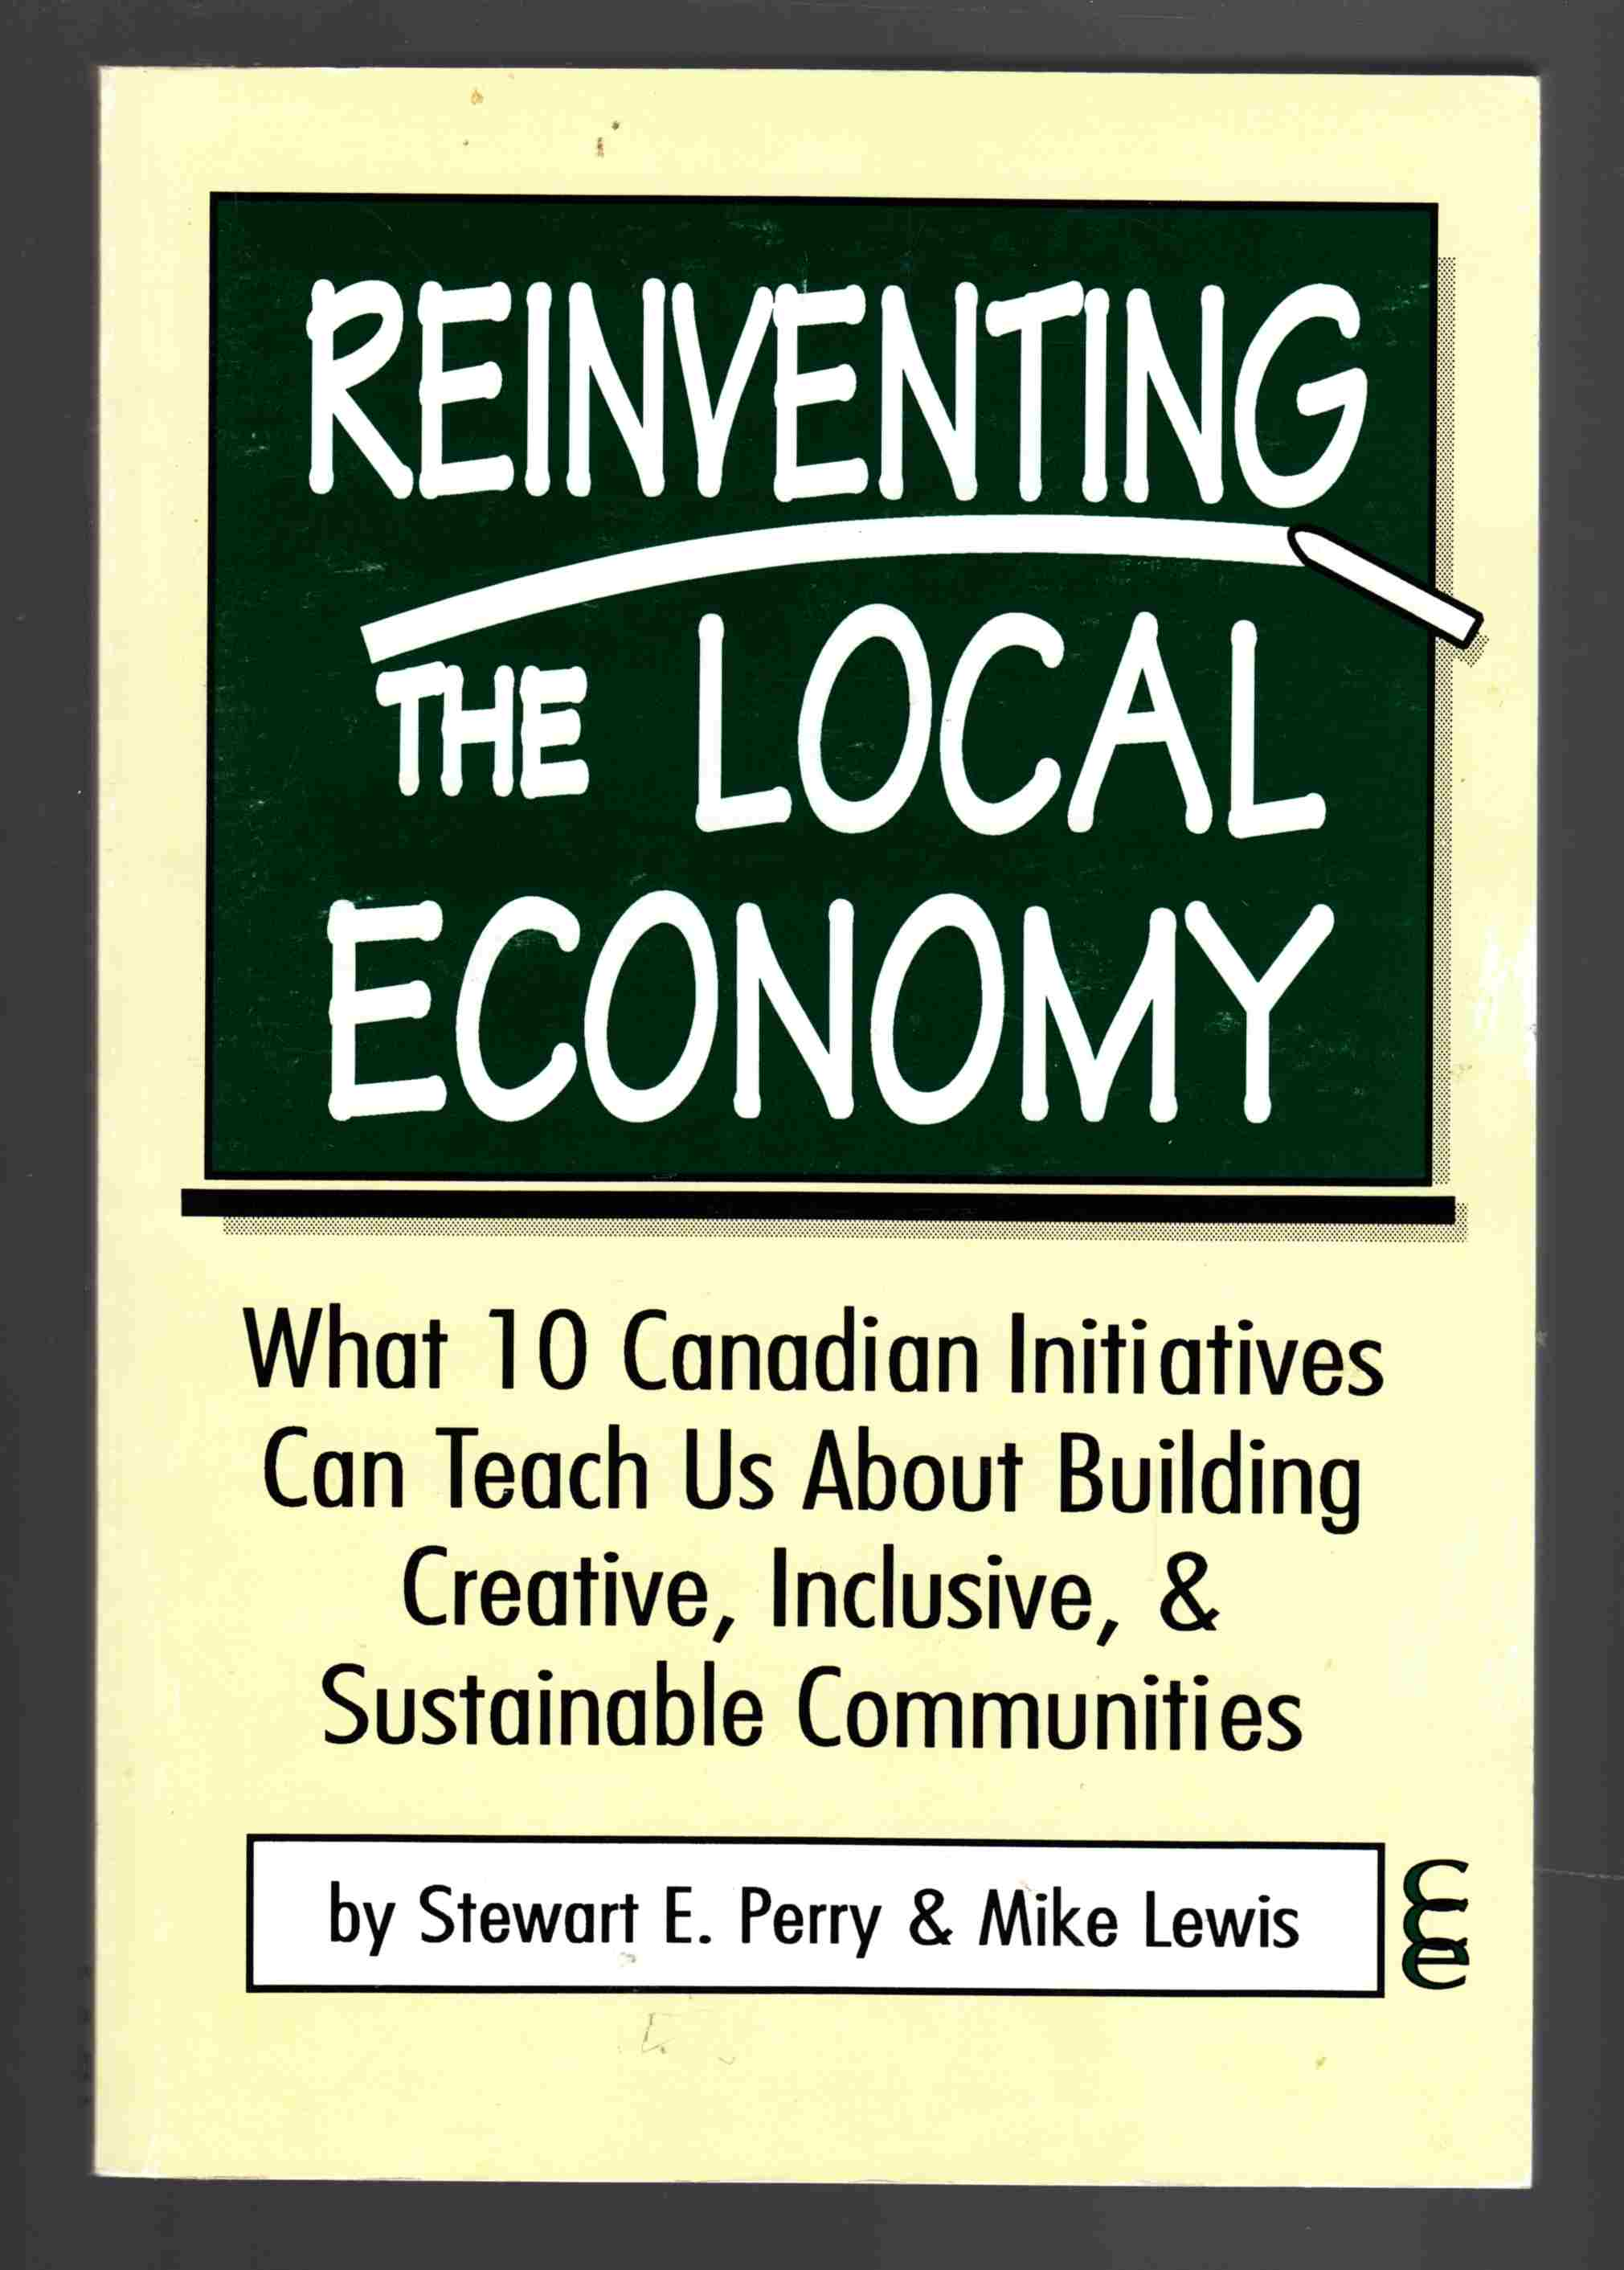 Image for Reinventing the Local Economy: What 10 Canadian Initiatives Can Teach Us about Building Creative, Inclusive, & Sustainable Communities